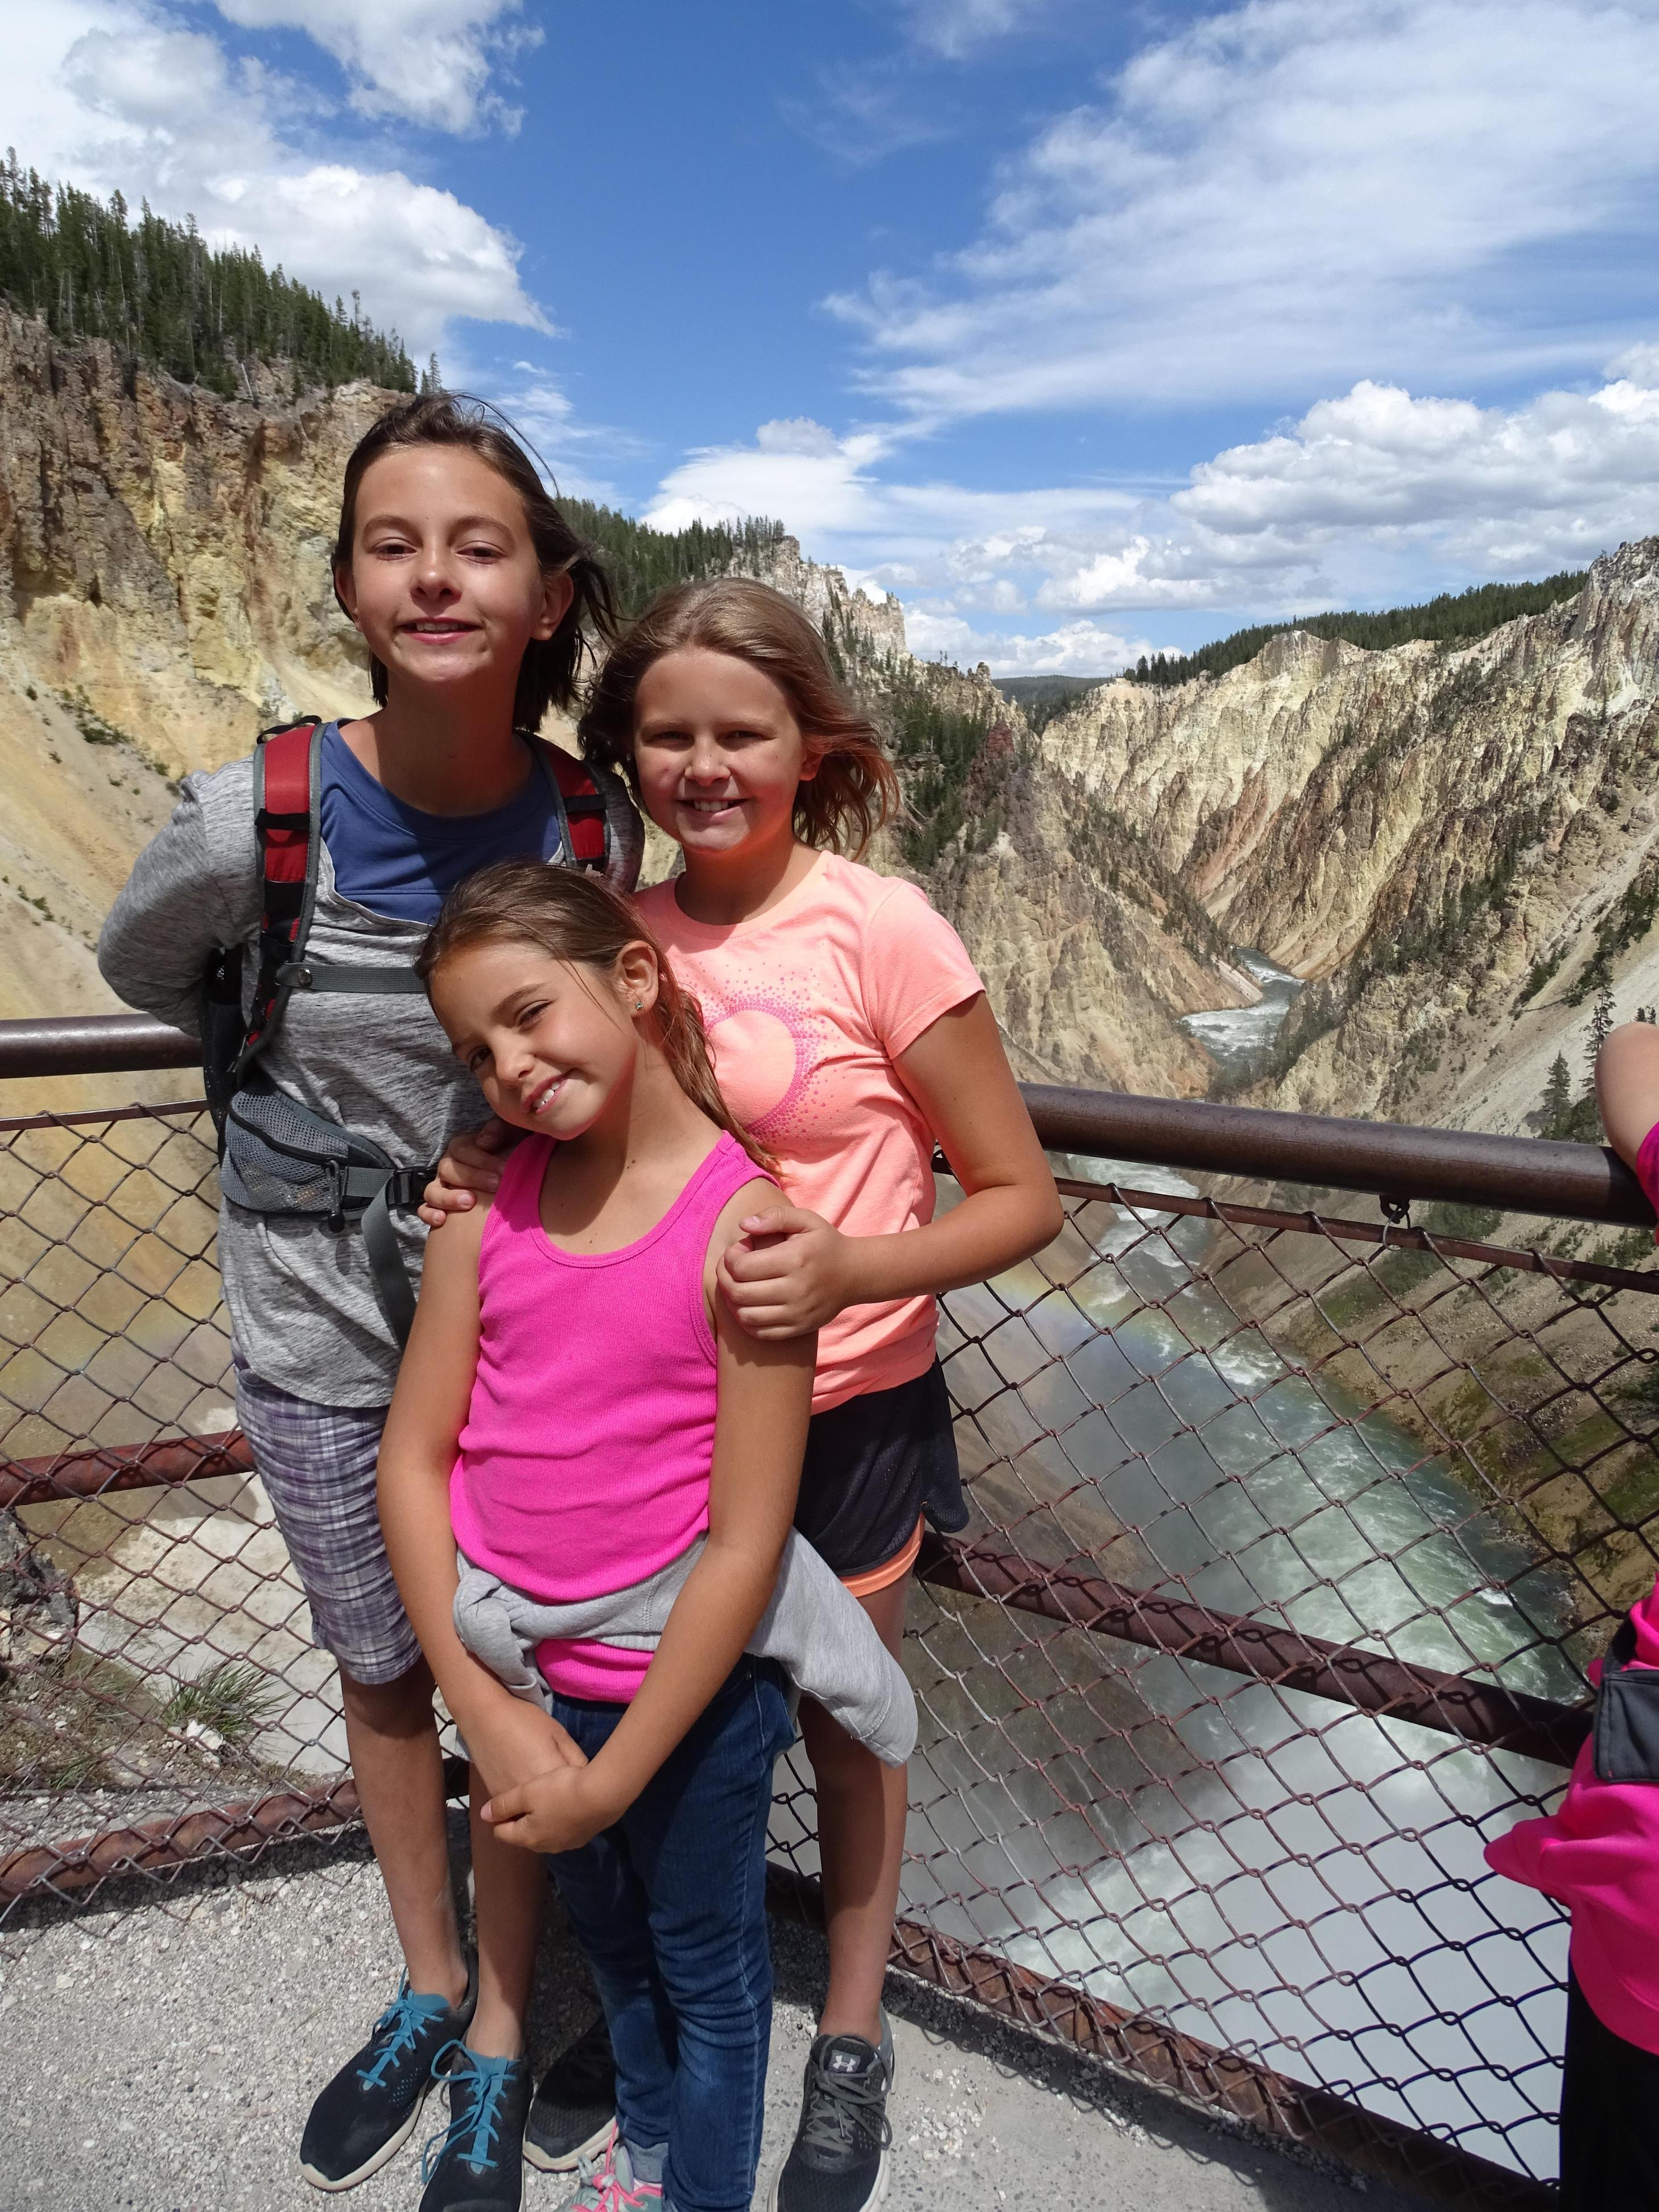 My three daughters Joy (14), Addie (11), and Claire (9) at Yellowstone National Park